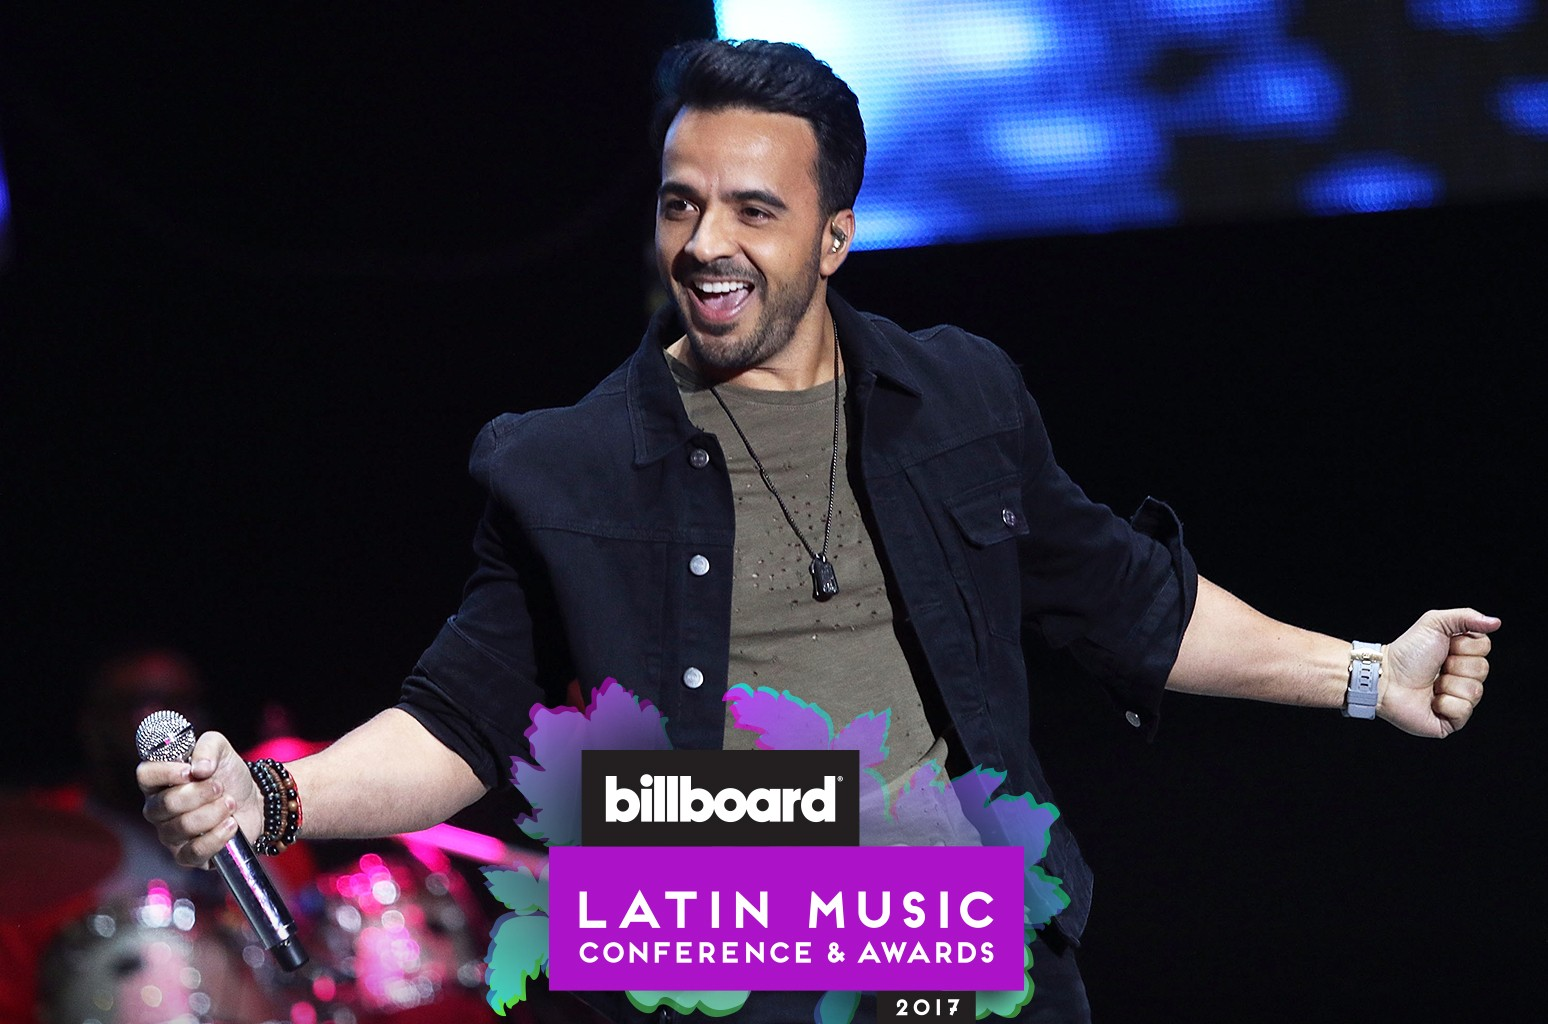 Luis Fonsi performs onstage during L Festival 2017 at Pico Rivera Sports Arena on March 18, 2017 in Pico Rivera, Calif.